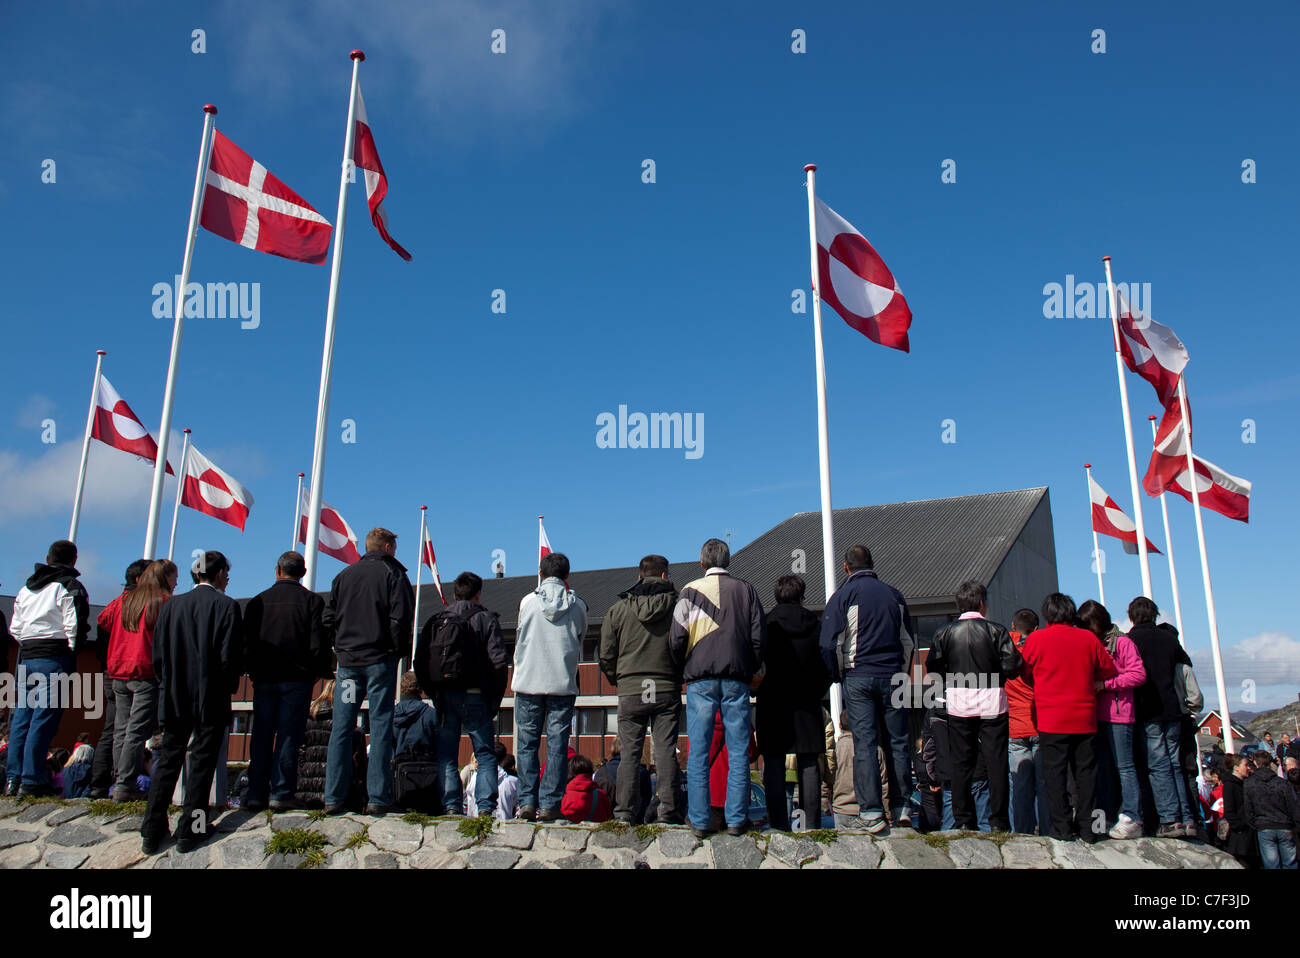 Danish and Greenland flags above people waiting to glimpse the Danish Royal Family, National Day, celebrating Self - Stock Image